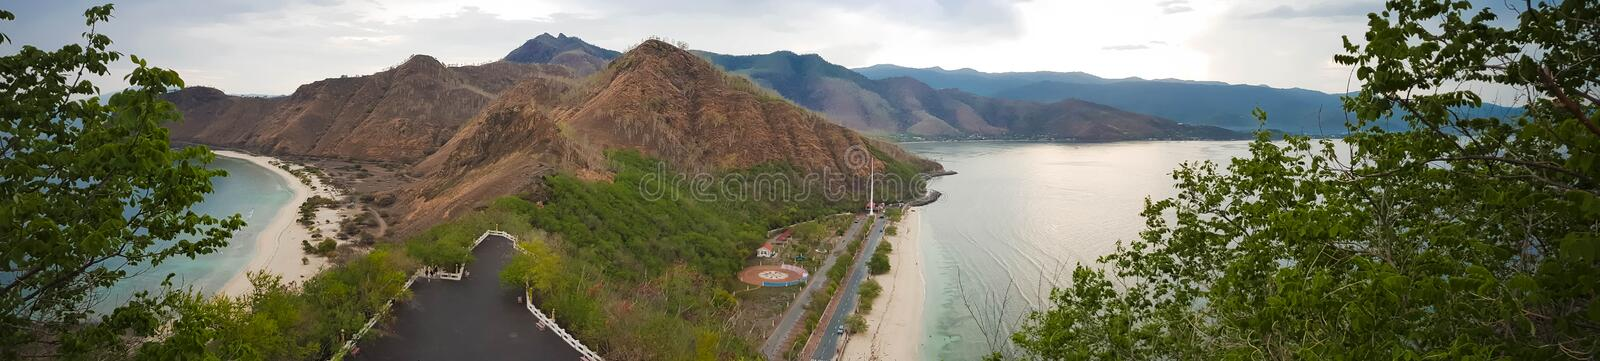 Tropical view from Cristo Rei Statue in Dili, East Timor. DILI, EAST TIMOR - DECEMBER 6, 2018: Tropical view from Cristo Rei Statue in Dili, East Timor royalty free stock photos